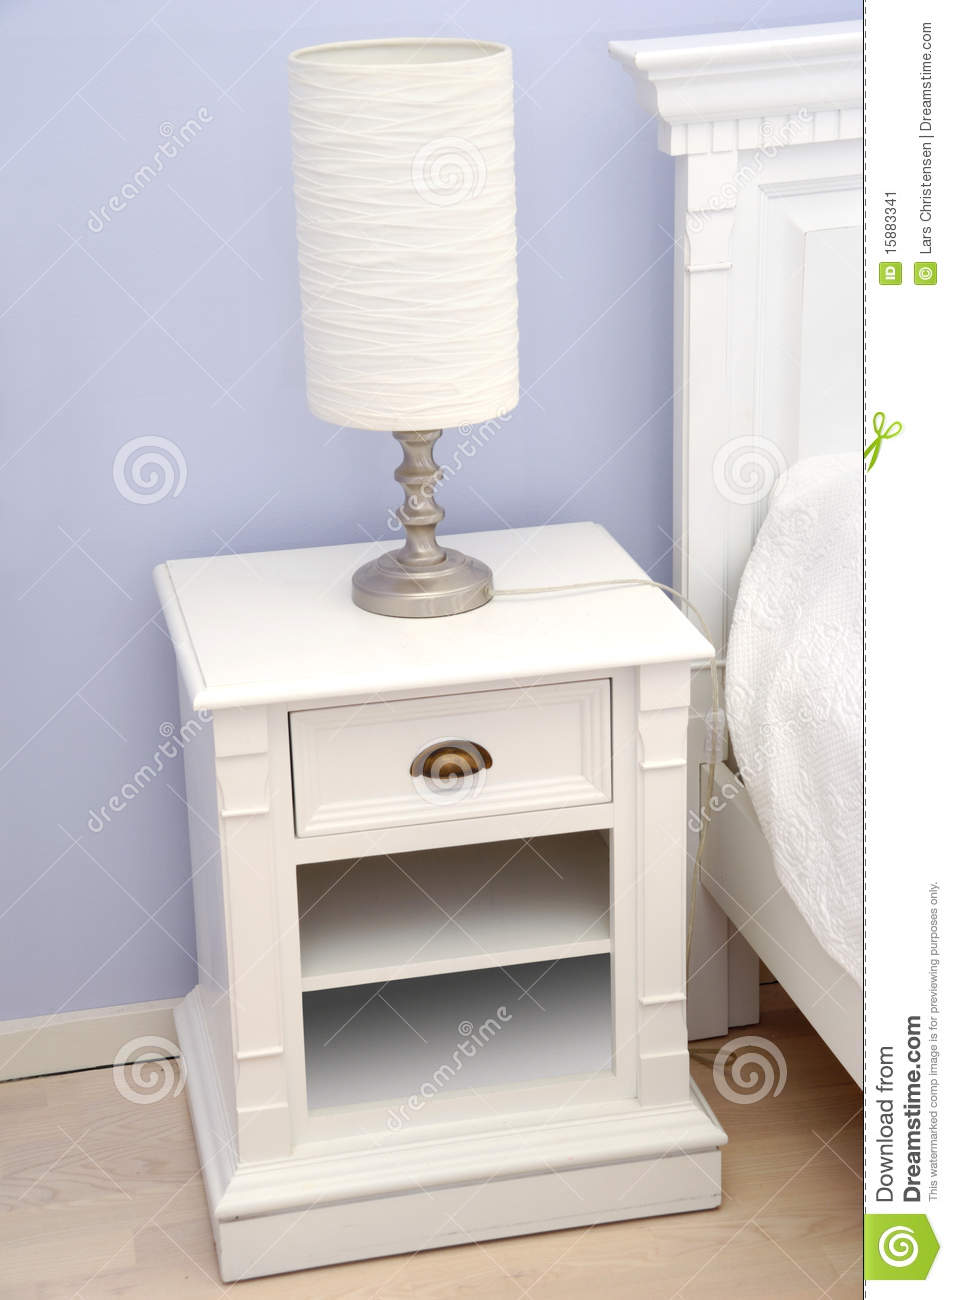 Table de chevet avec la lampe image stock image 15883341 - Lampe de table de nuit ...